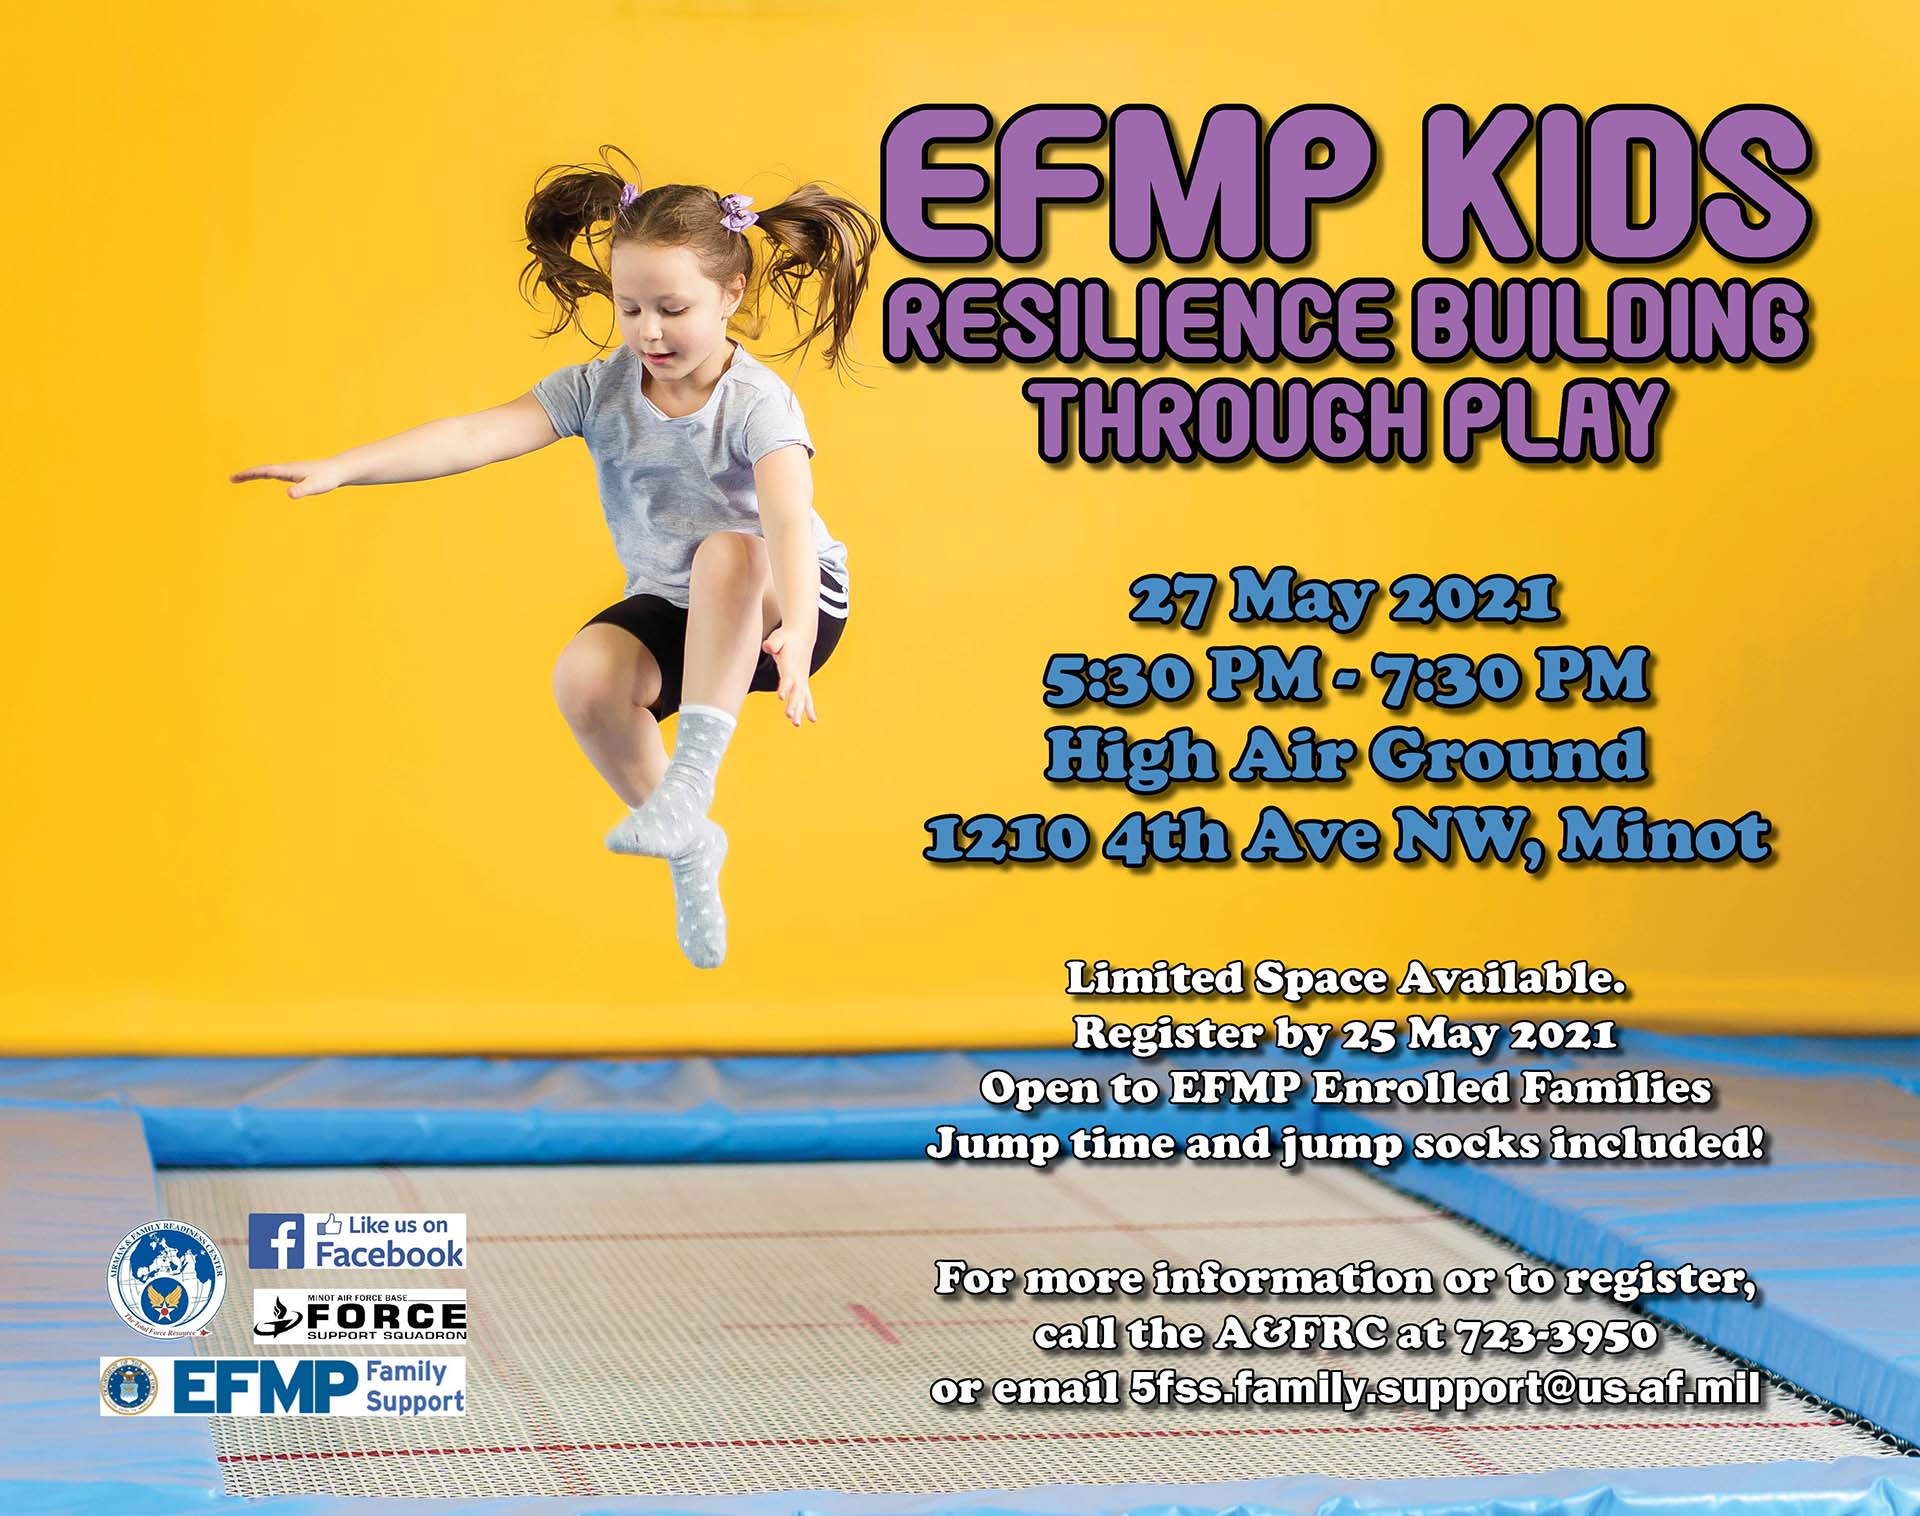 EFMP Kids - Resilience Building Through Play